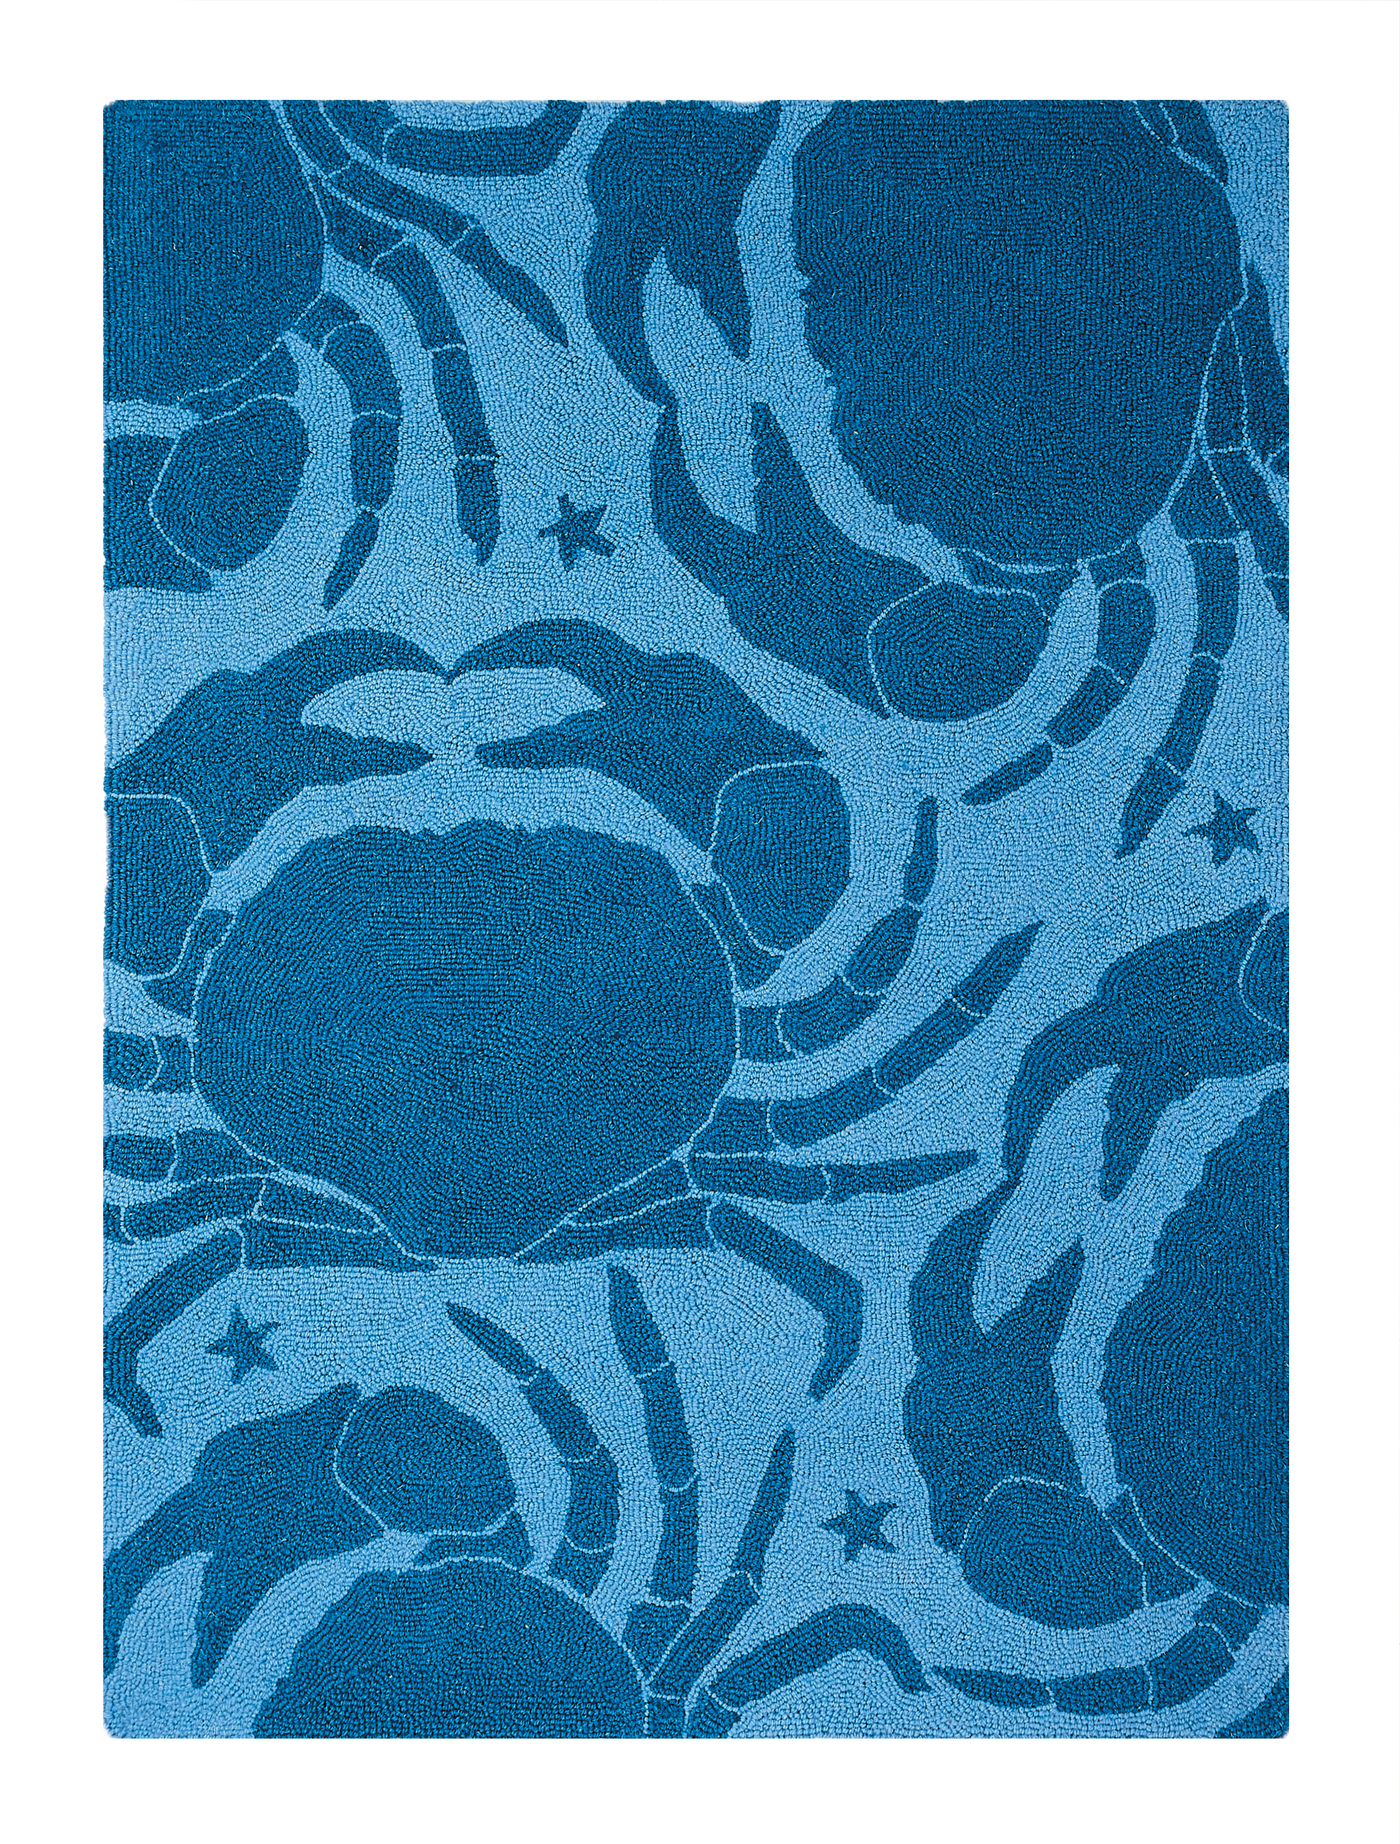 Blue Star Crab Rug